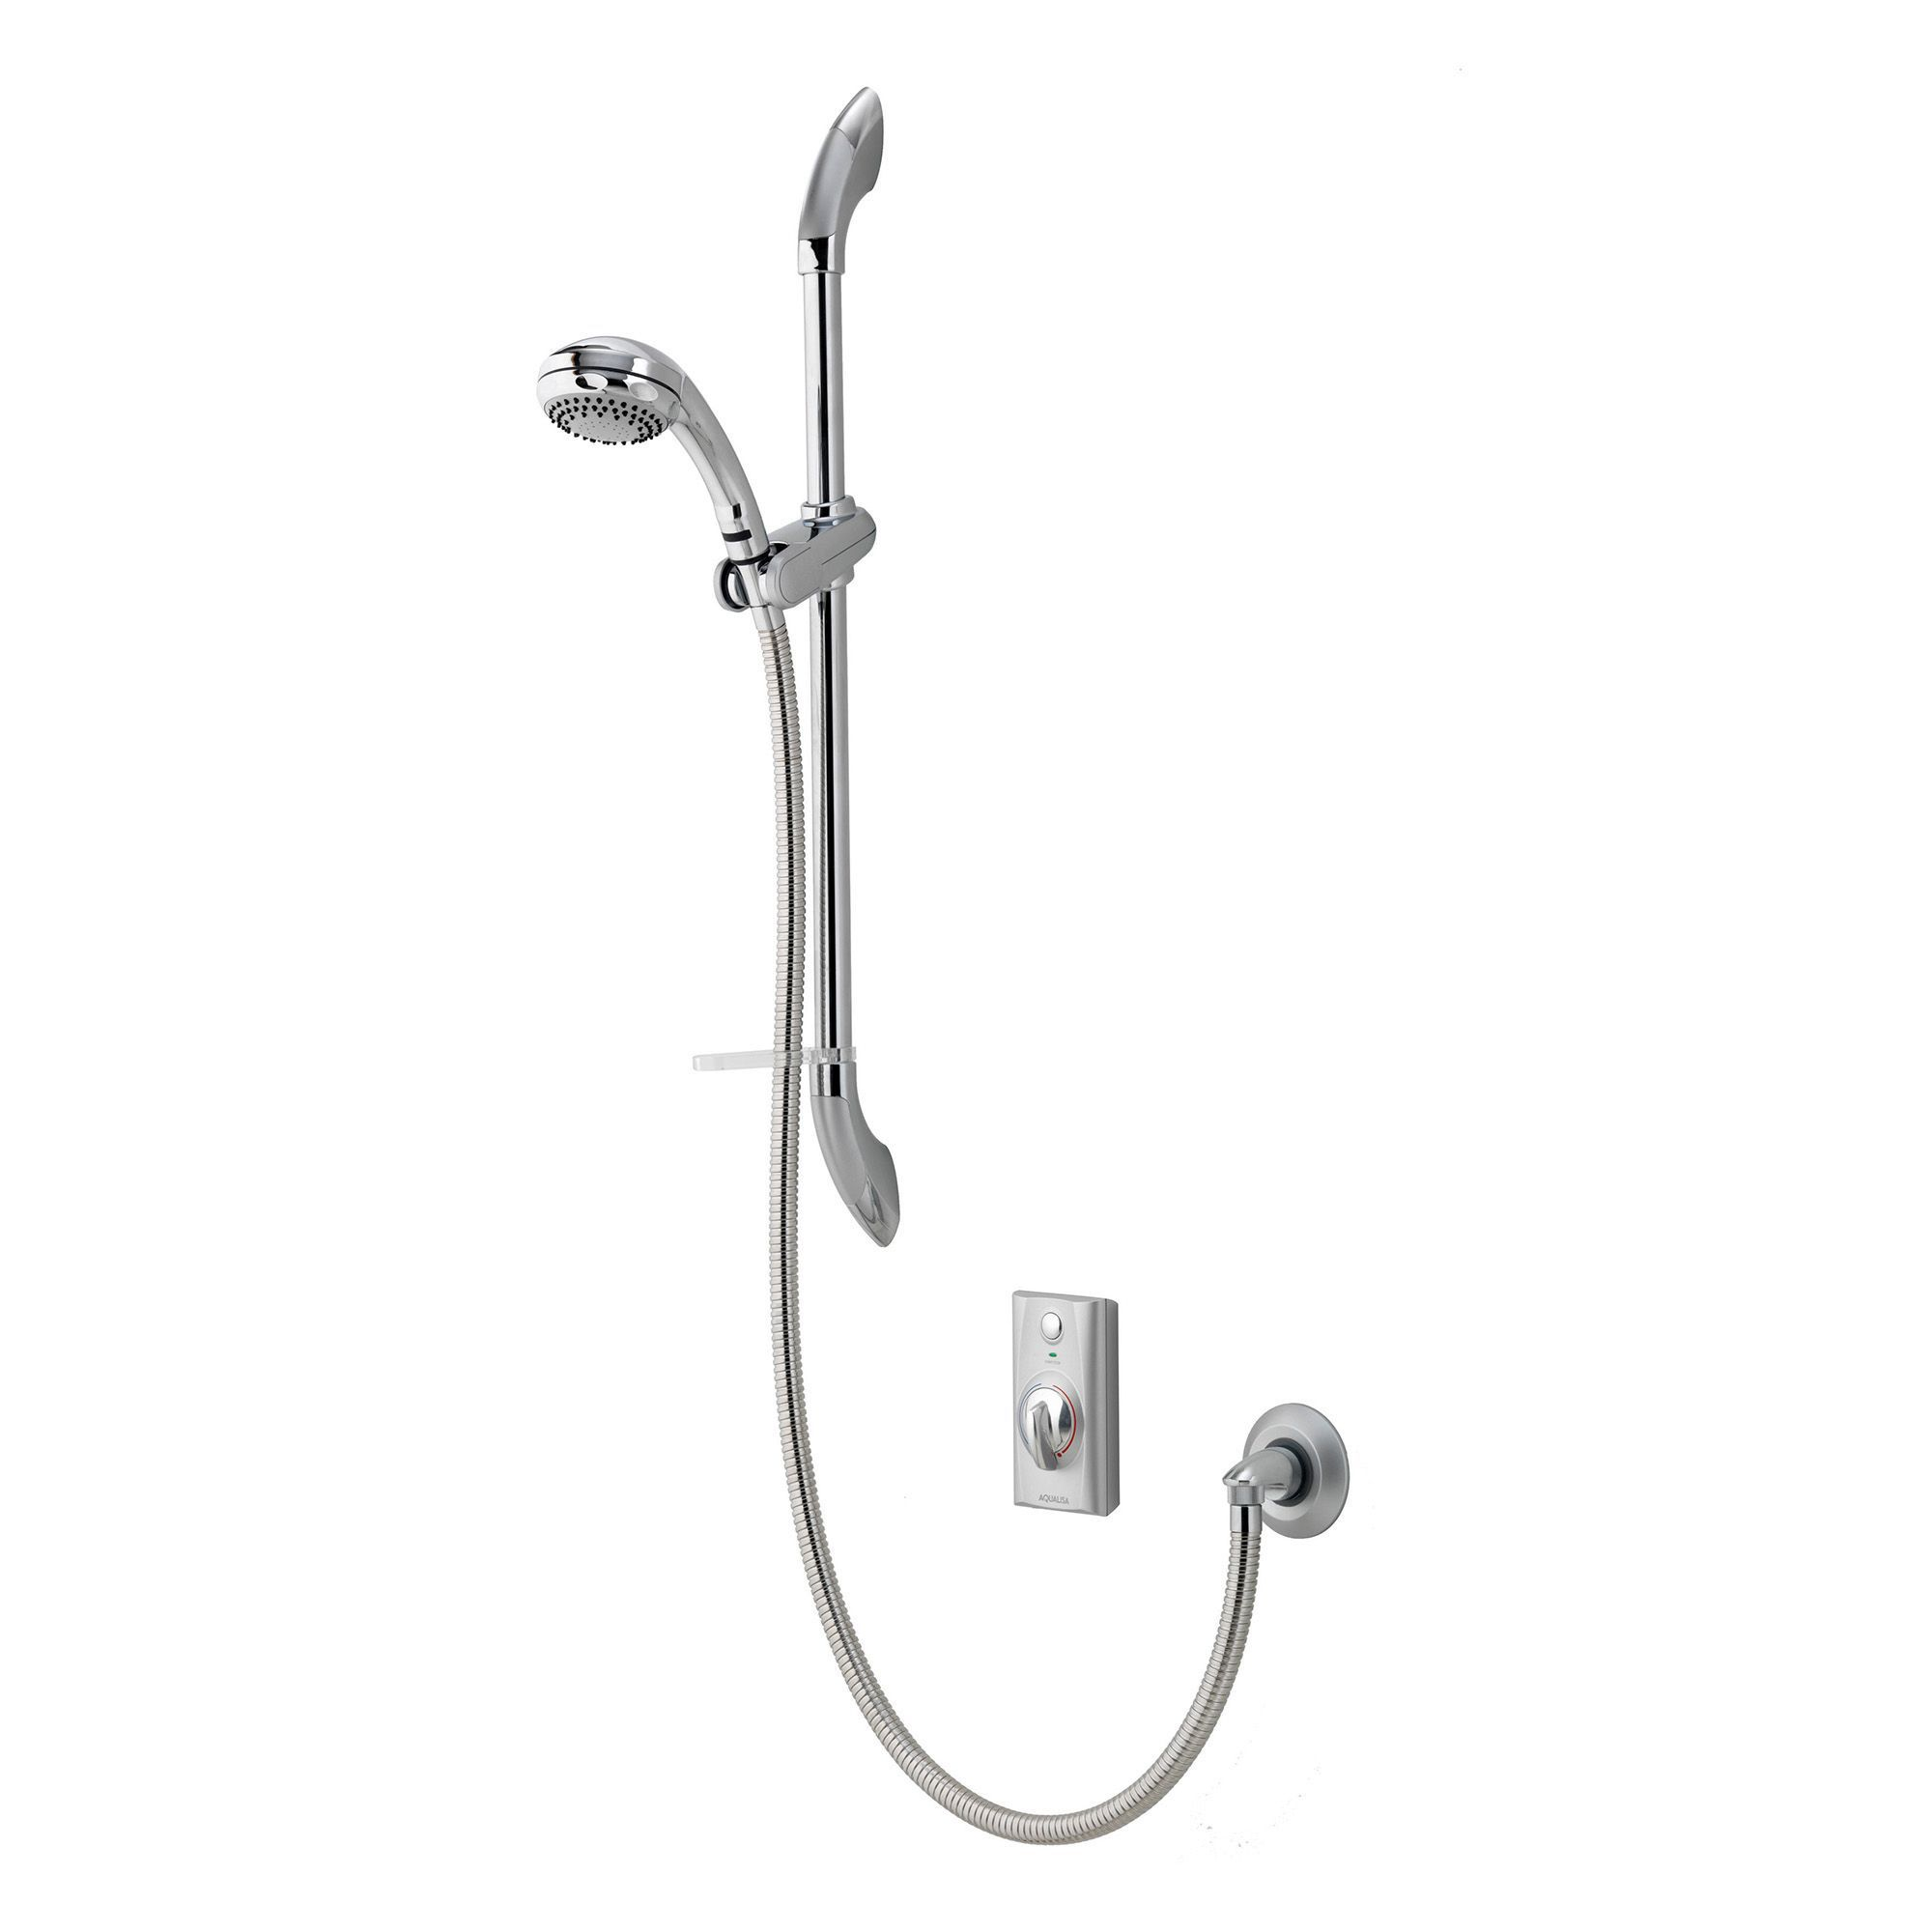 Aqualisa Visage Chrome effect Manual Digital mixer shower